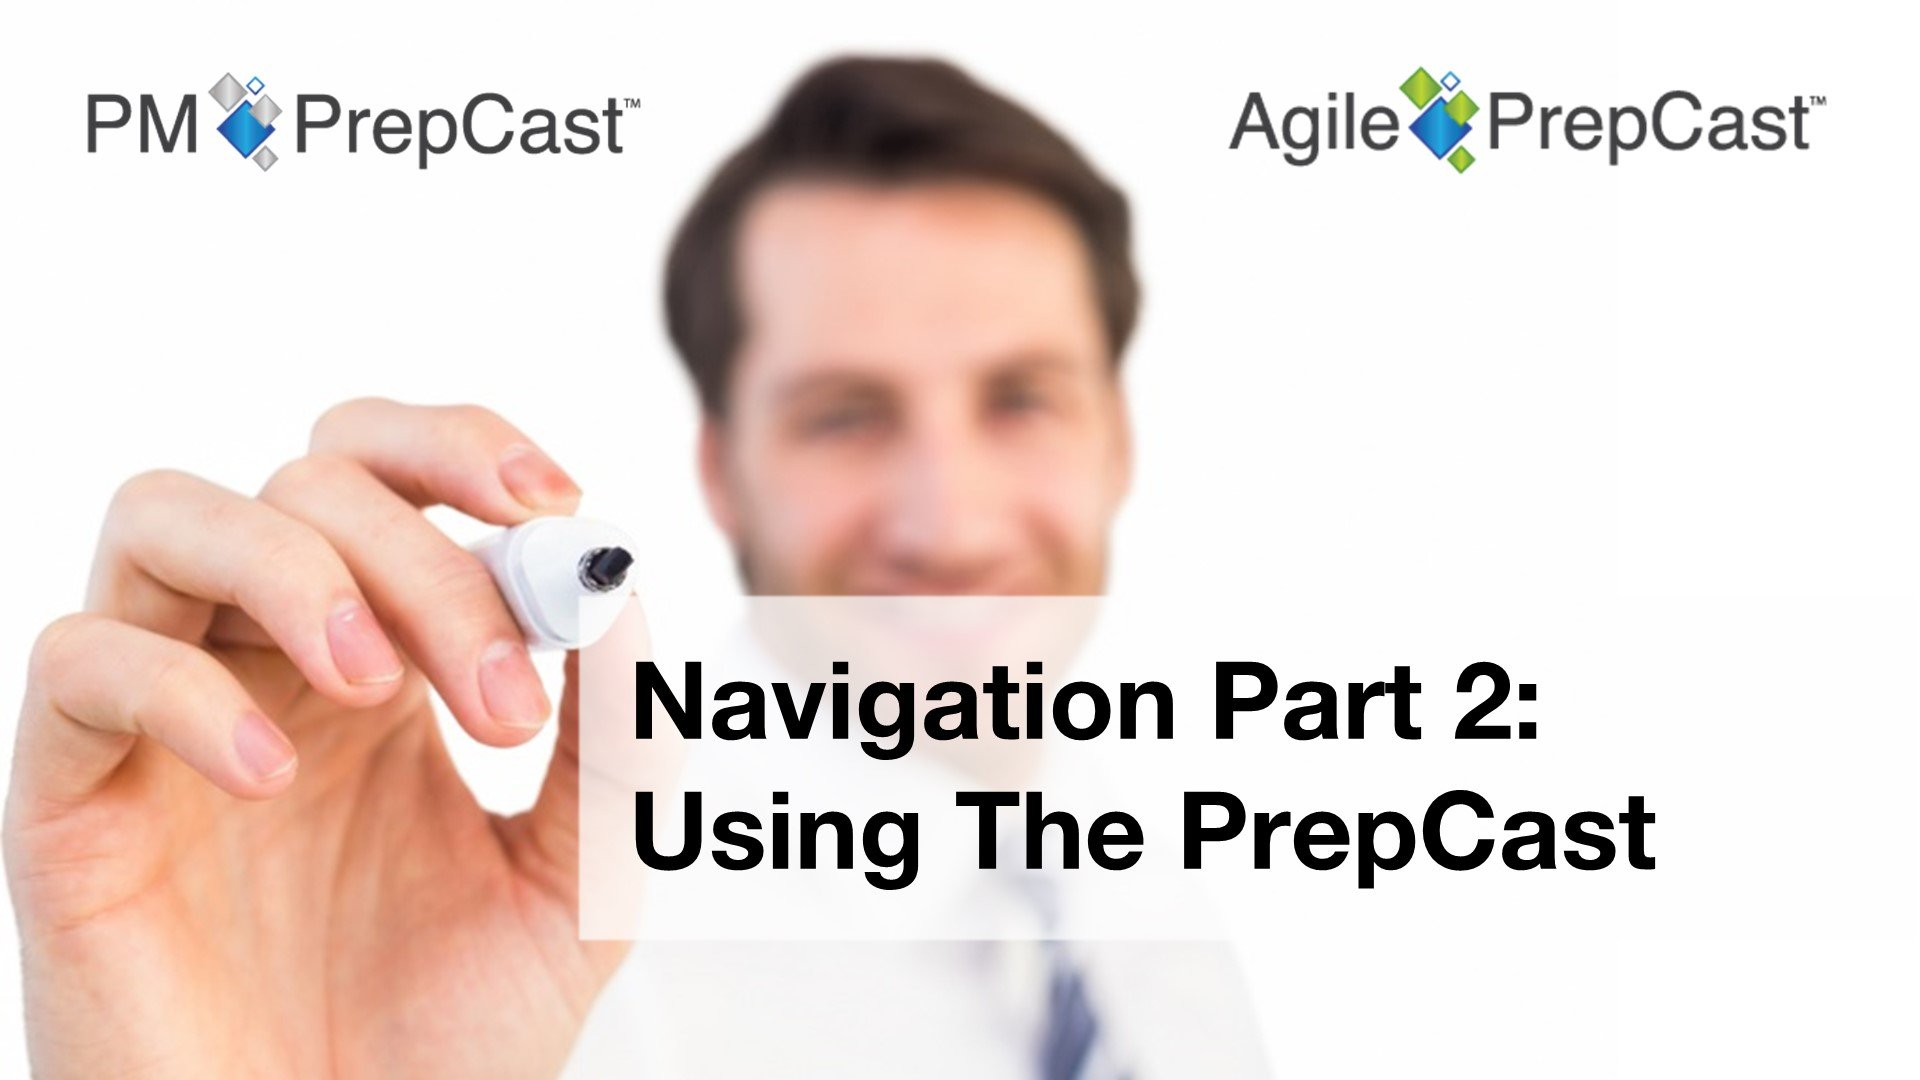 Navigation Part 2: Using The PrepCast